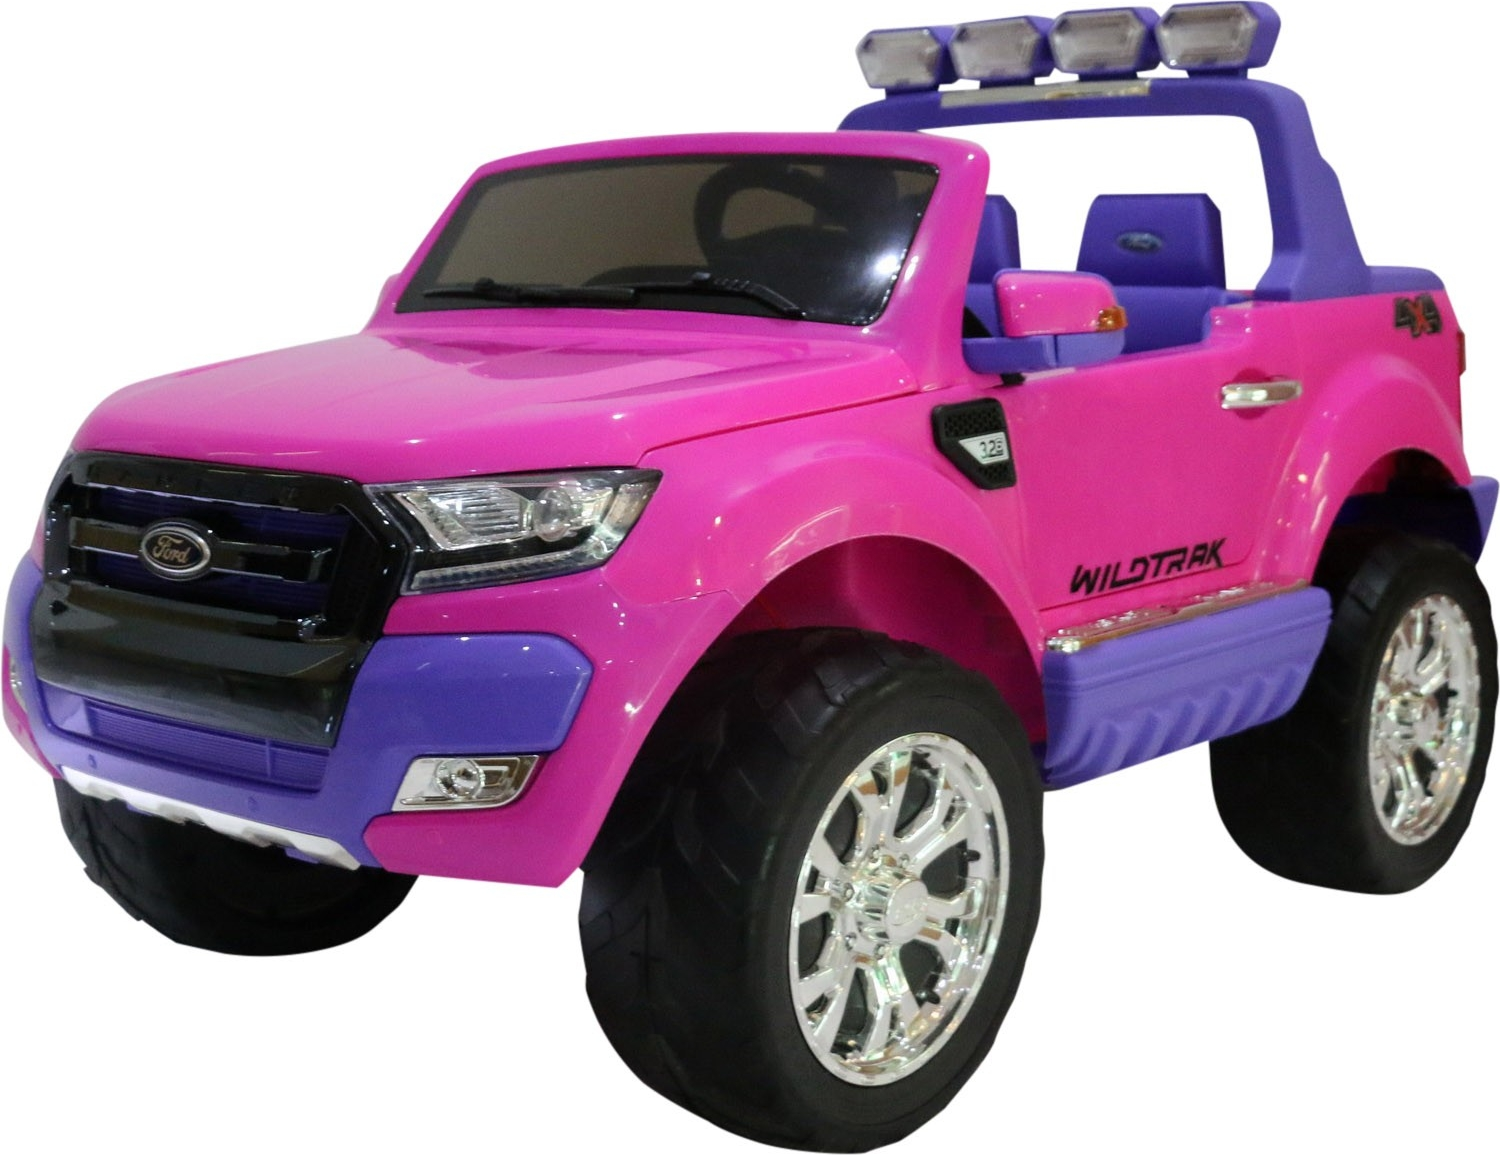 The Licensed Ford Ranger Wildtrak 4wd Car For Kids Available At Market Co Uk Order Online Get Free And F With Images Ford Electric Car Ford Ranger Ford Ranger Wildtrak